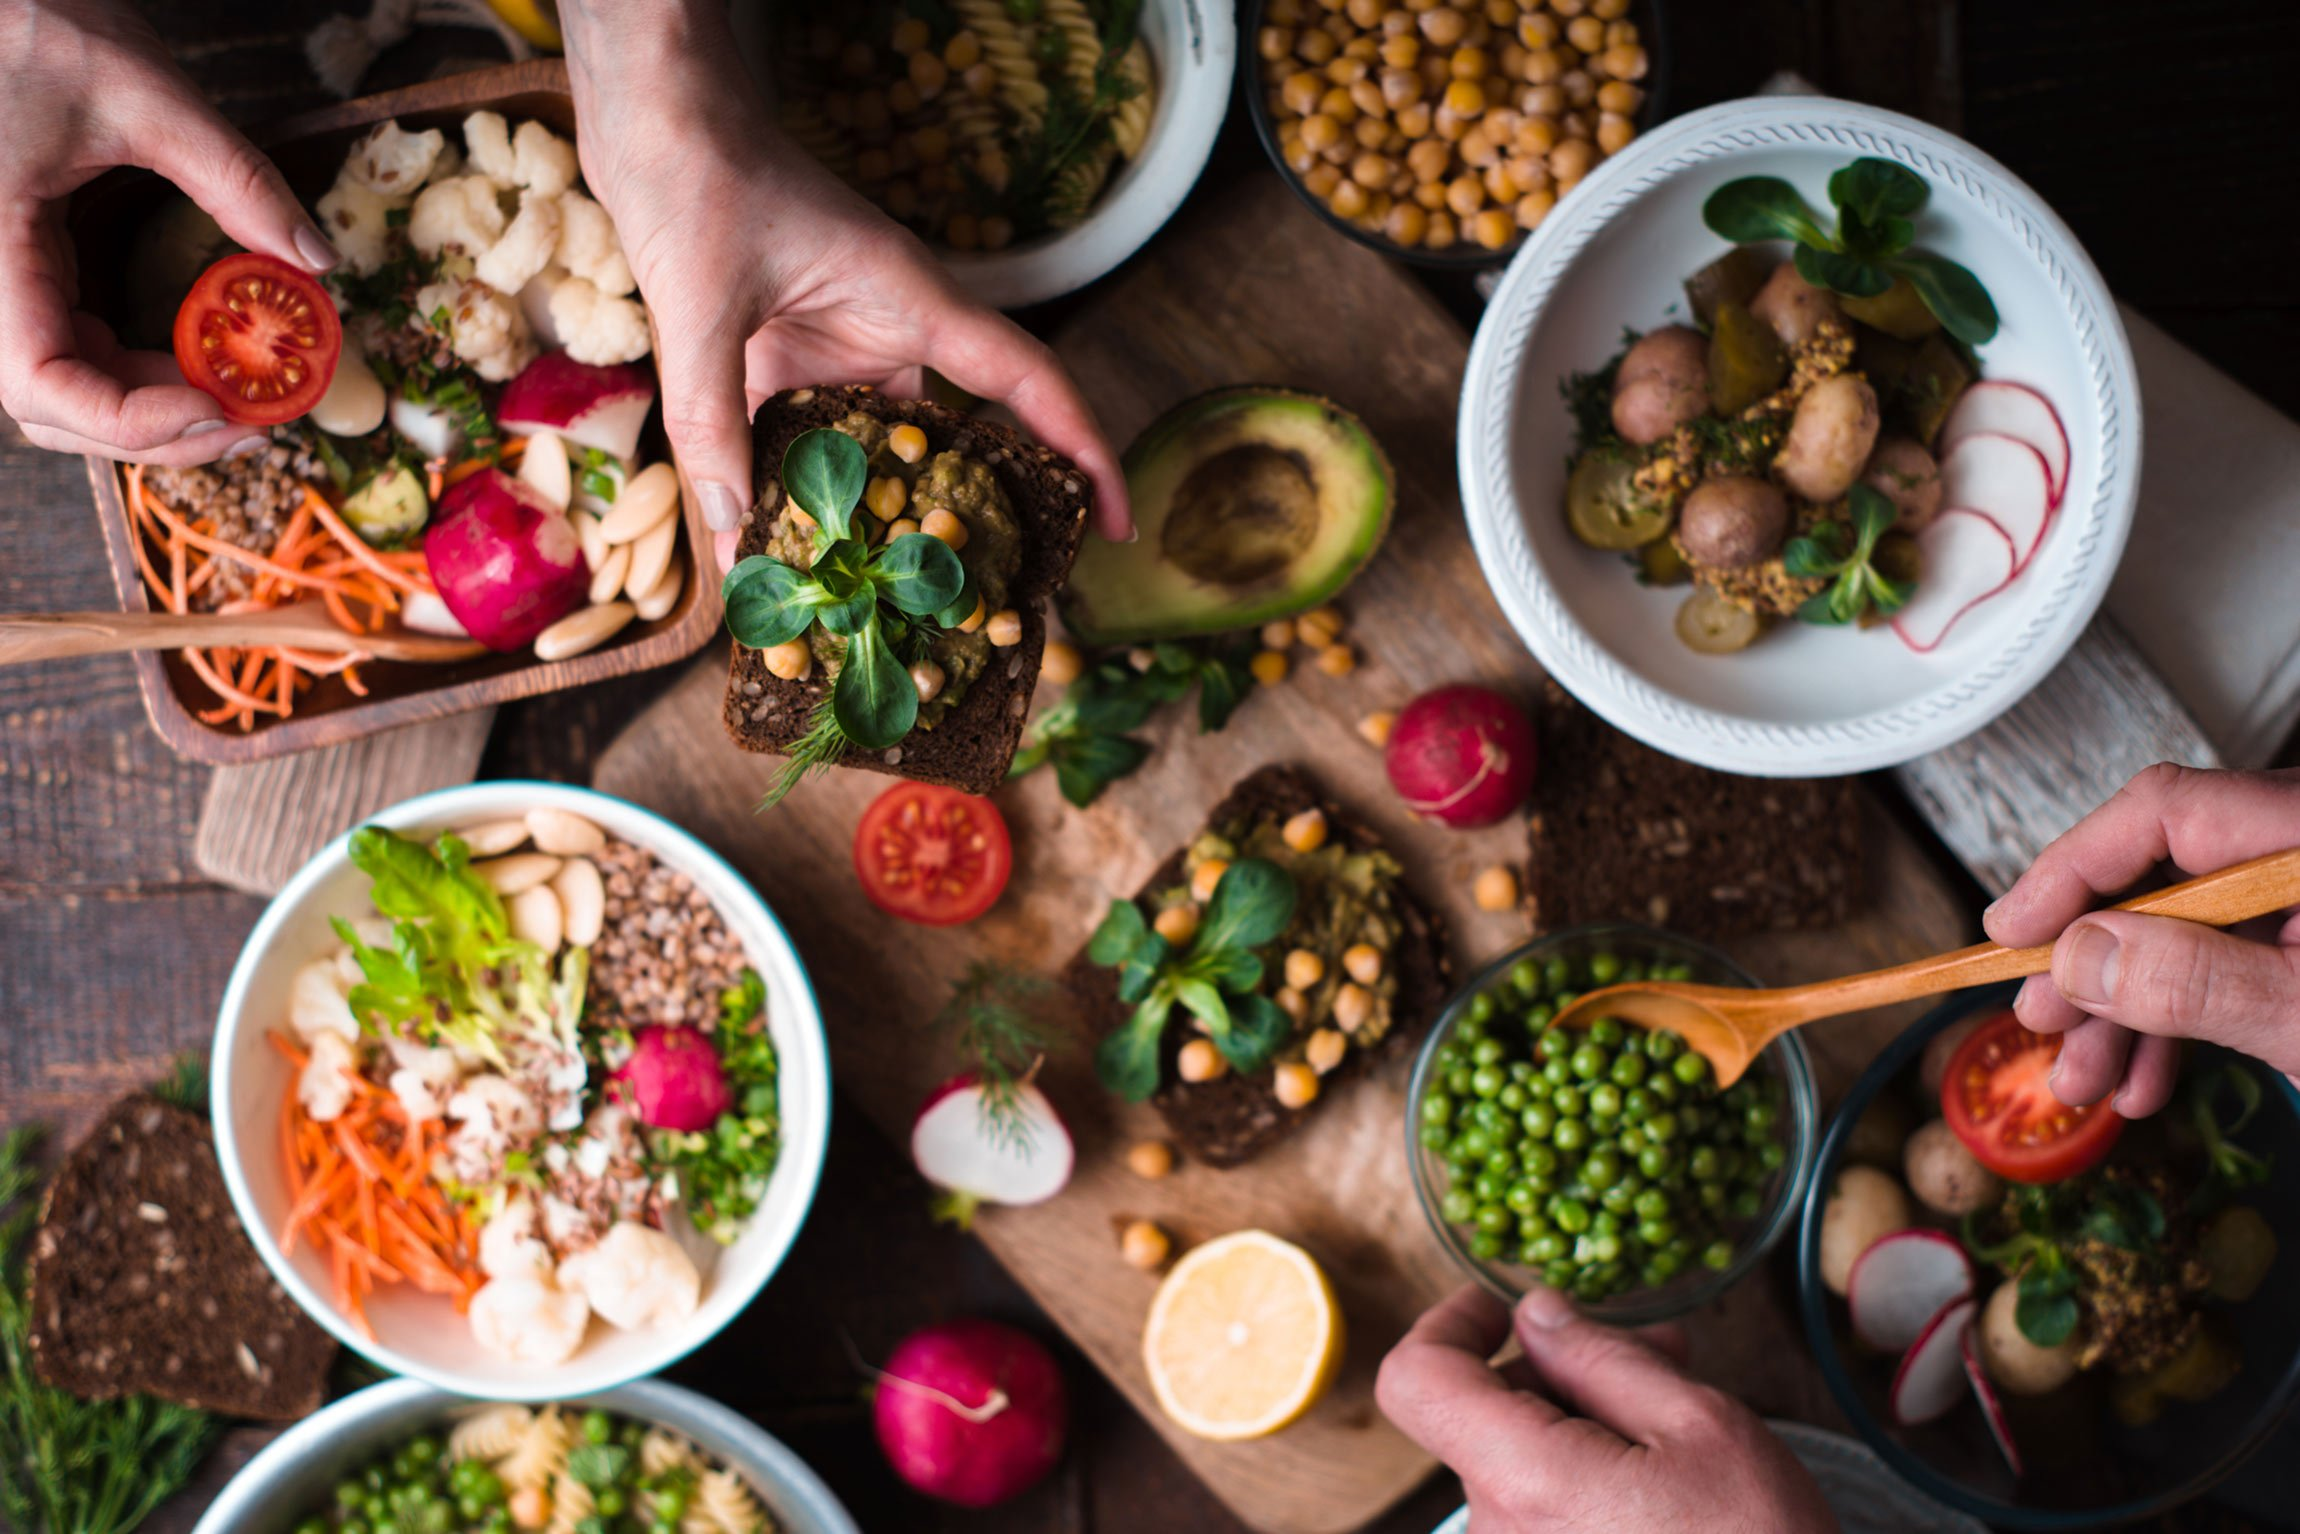 A diet for immunity features whole plant foods full of antioxidants